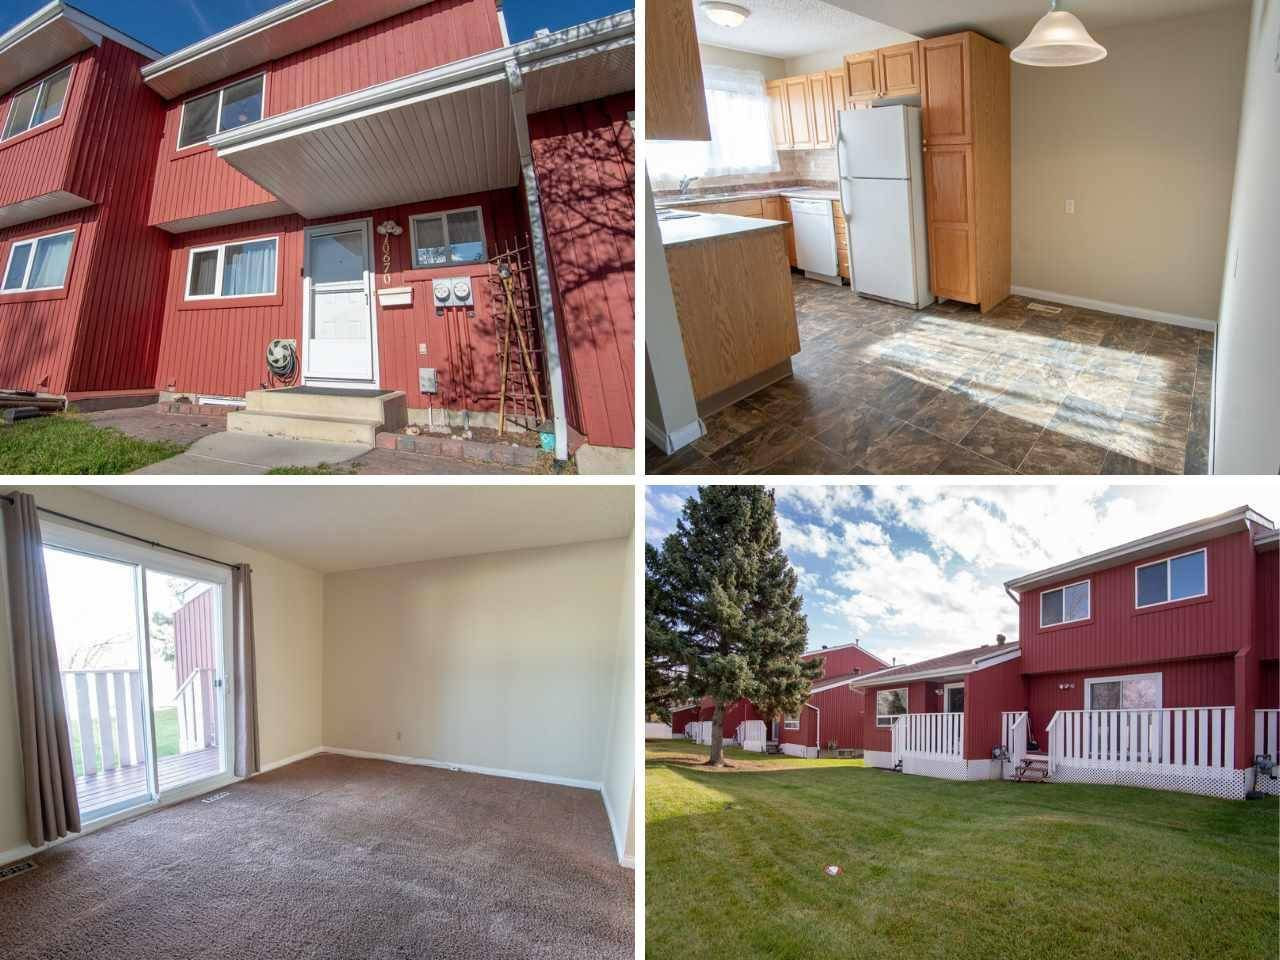 Townhouse for sale at 10670 Beaumaris Rd Nw Edmonton Alberta - MLS: E4184840